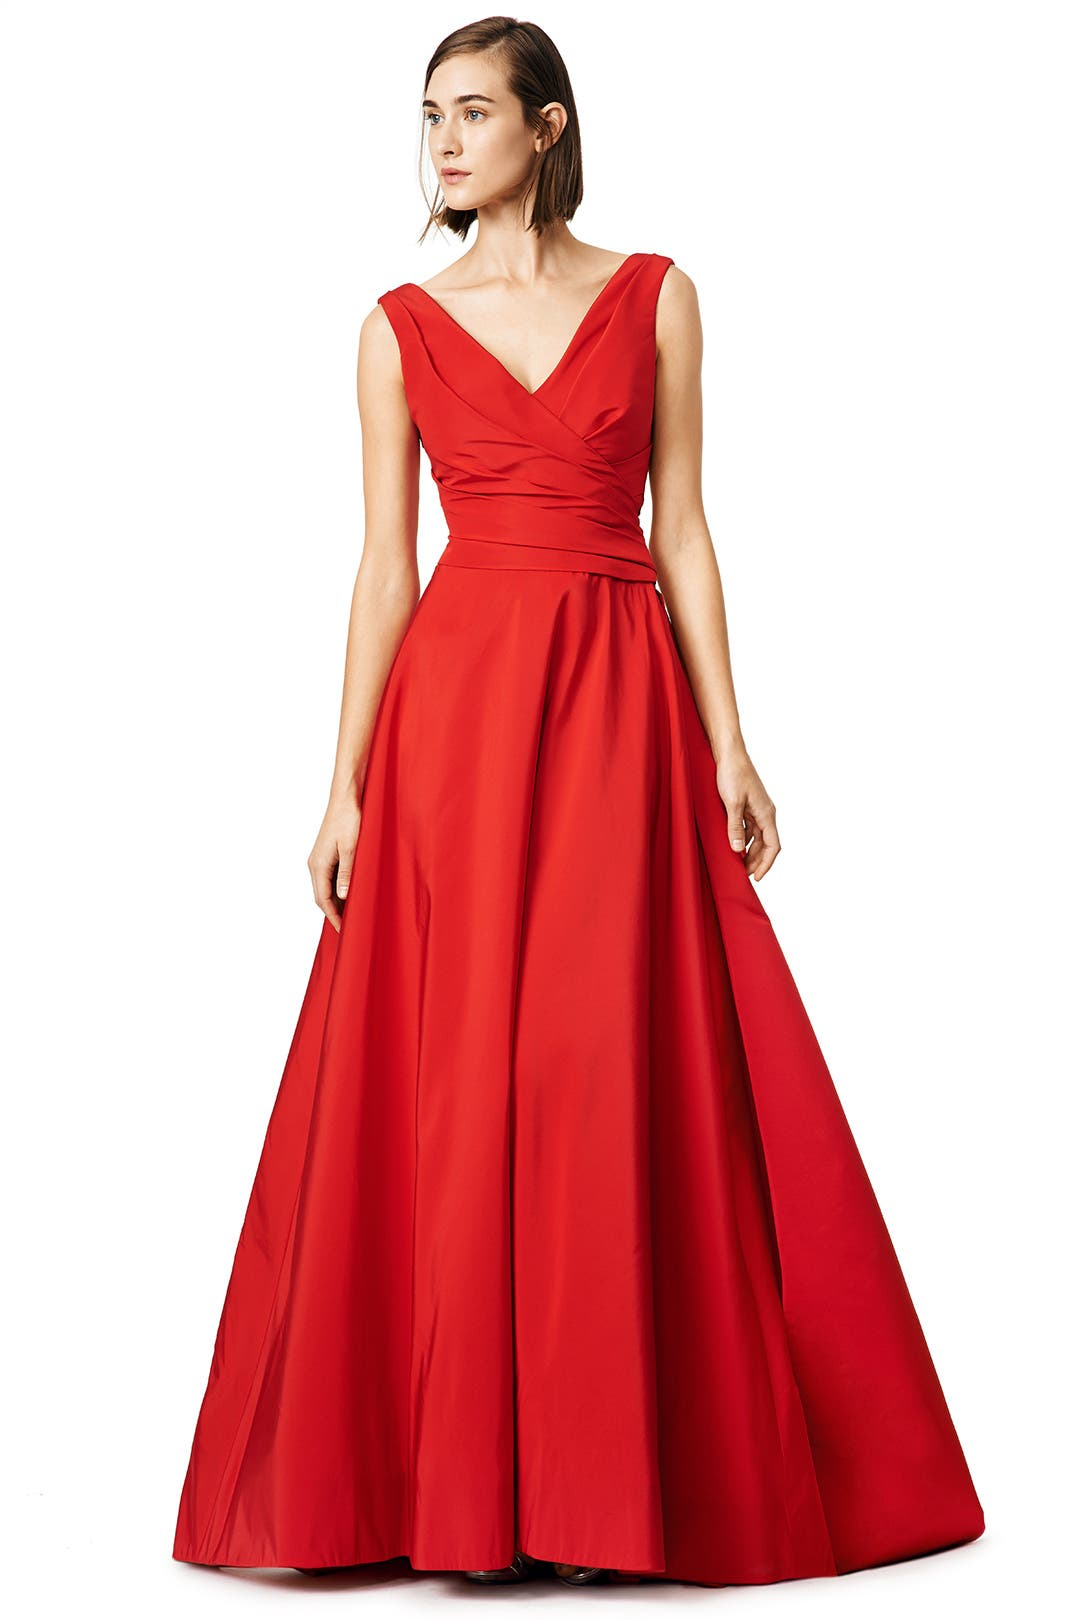 Scholar Gown by Monique Lhuillier for $450 | Rent the Runway